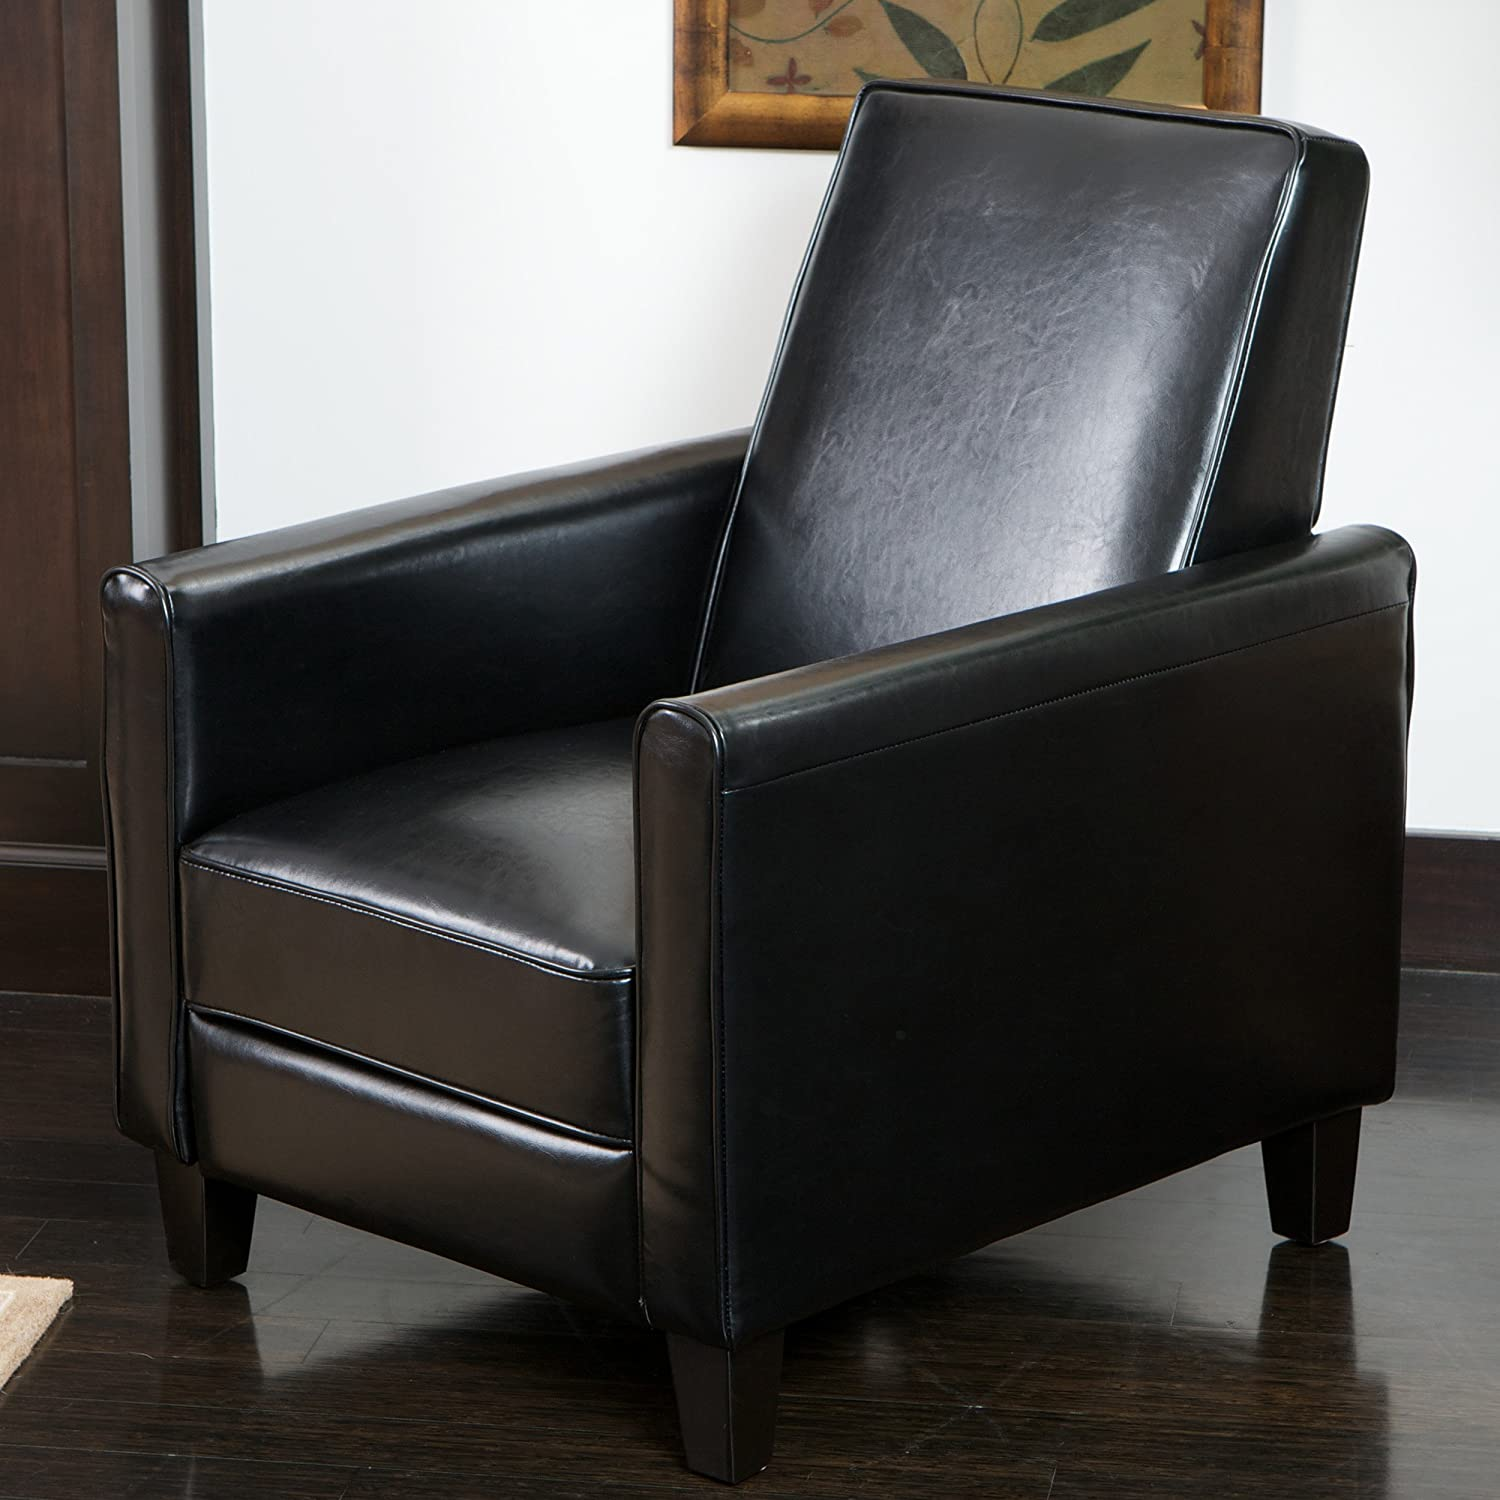 Lucas Black Leather Modern Sleek Recliner Club Chair & Contemporary recliners - Comfortable recliner.com islam-shia.org